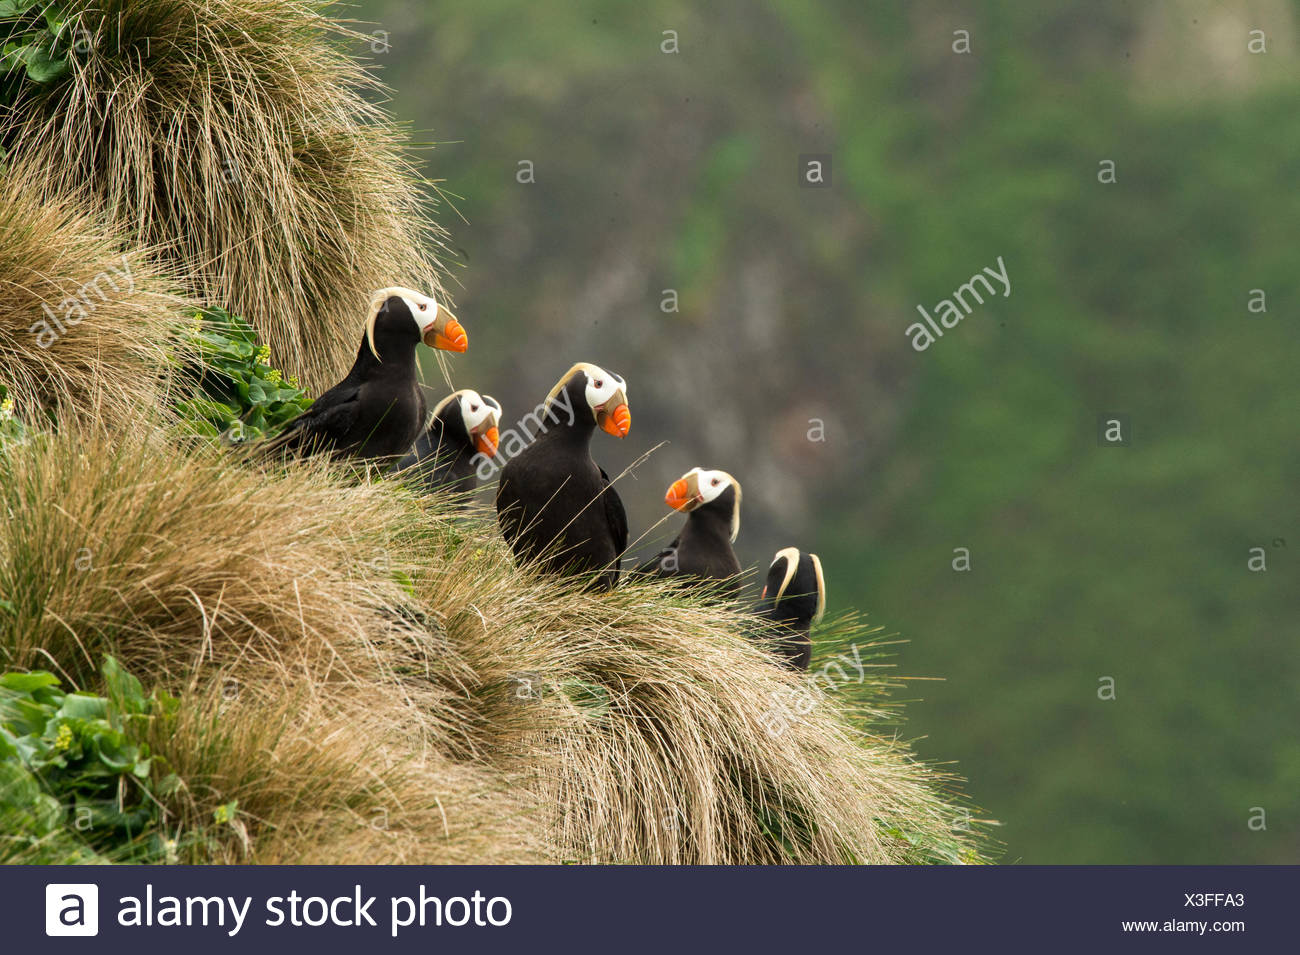 A group of tufted puffins, Fratercula cirrhata, sit in front of their burrows. Stock Photo